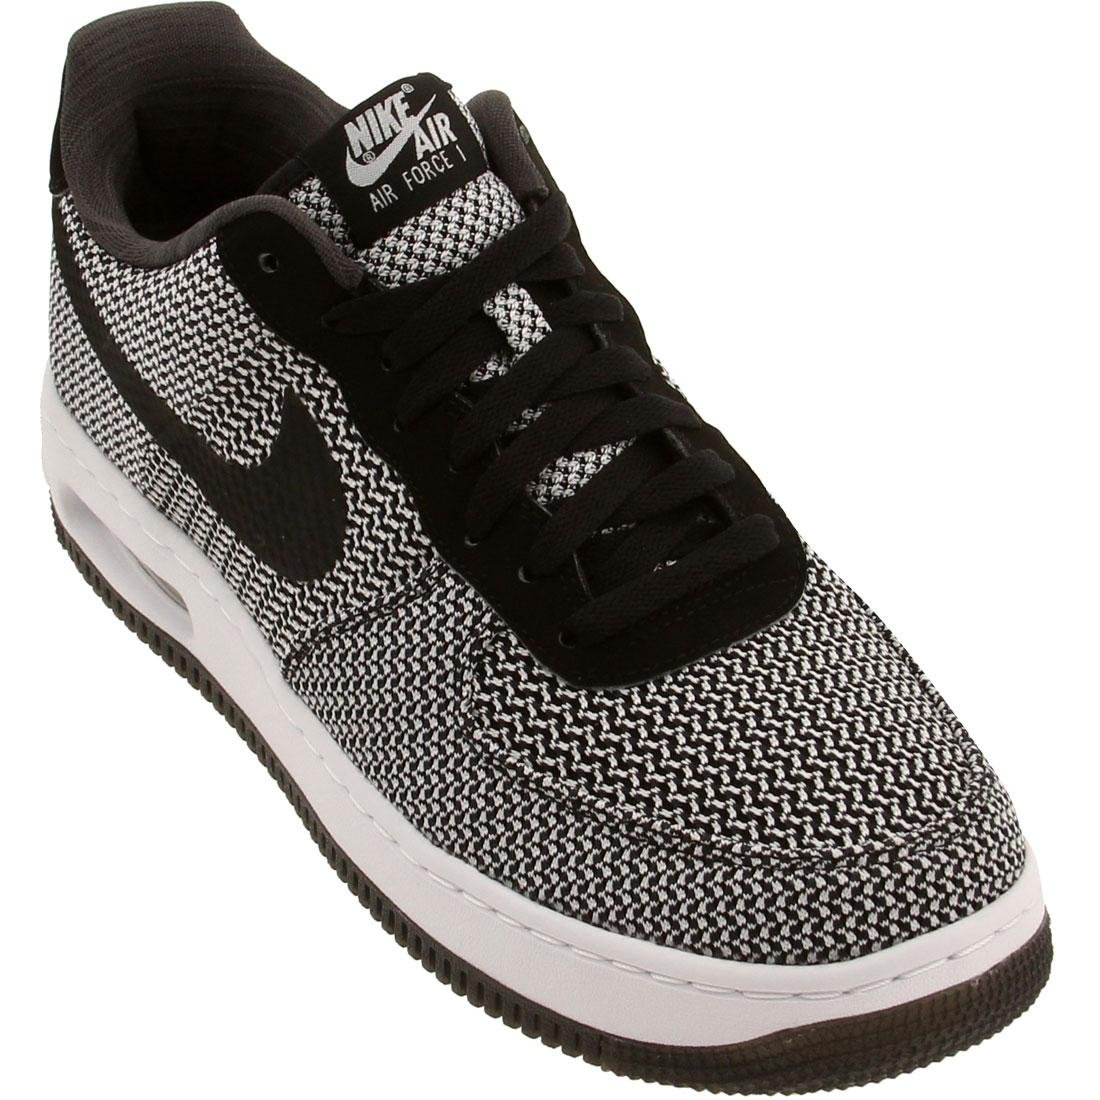 NIKE Air Force1 Elite TXT Herren Turnschuhe